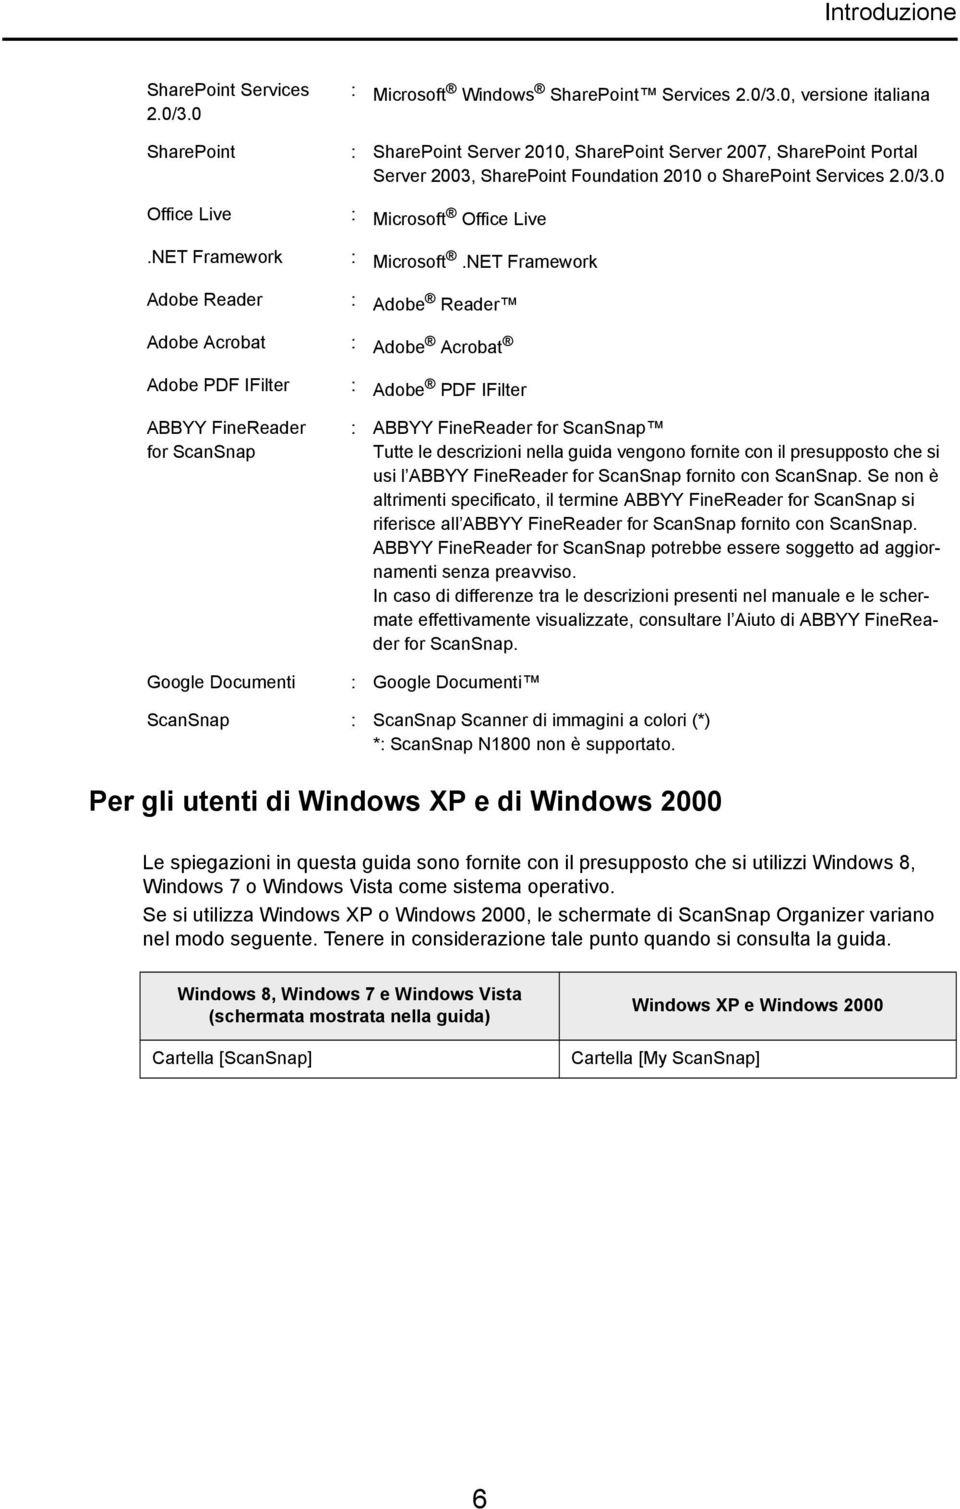 0, versione italiana SharePoint : SharePoint Server 2010, SharePoint Server 2007, SharePoint Portal Server 2003, SharePoint Foundation 2010 o SharePoint Services 2.0/3.